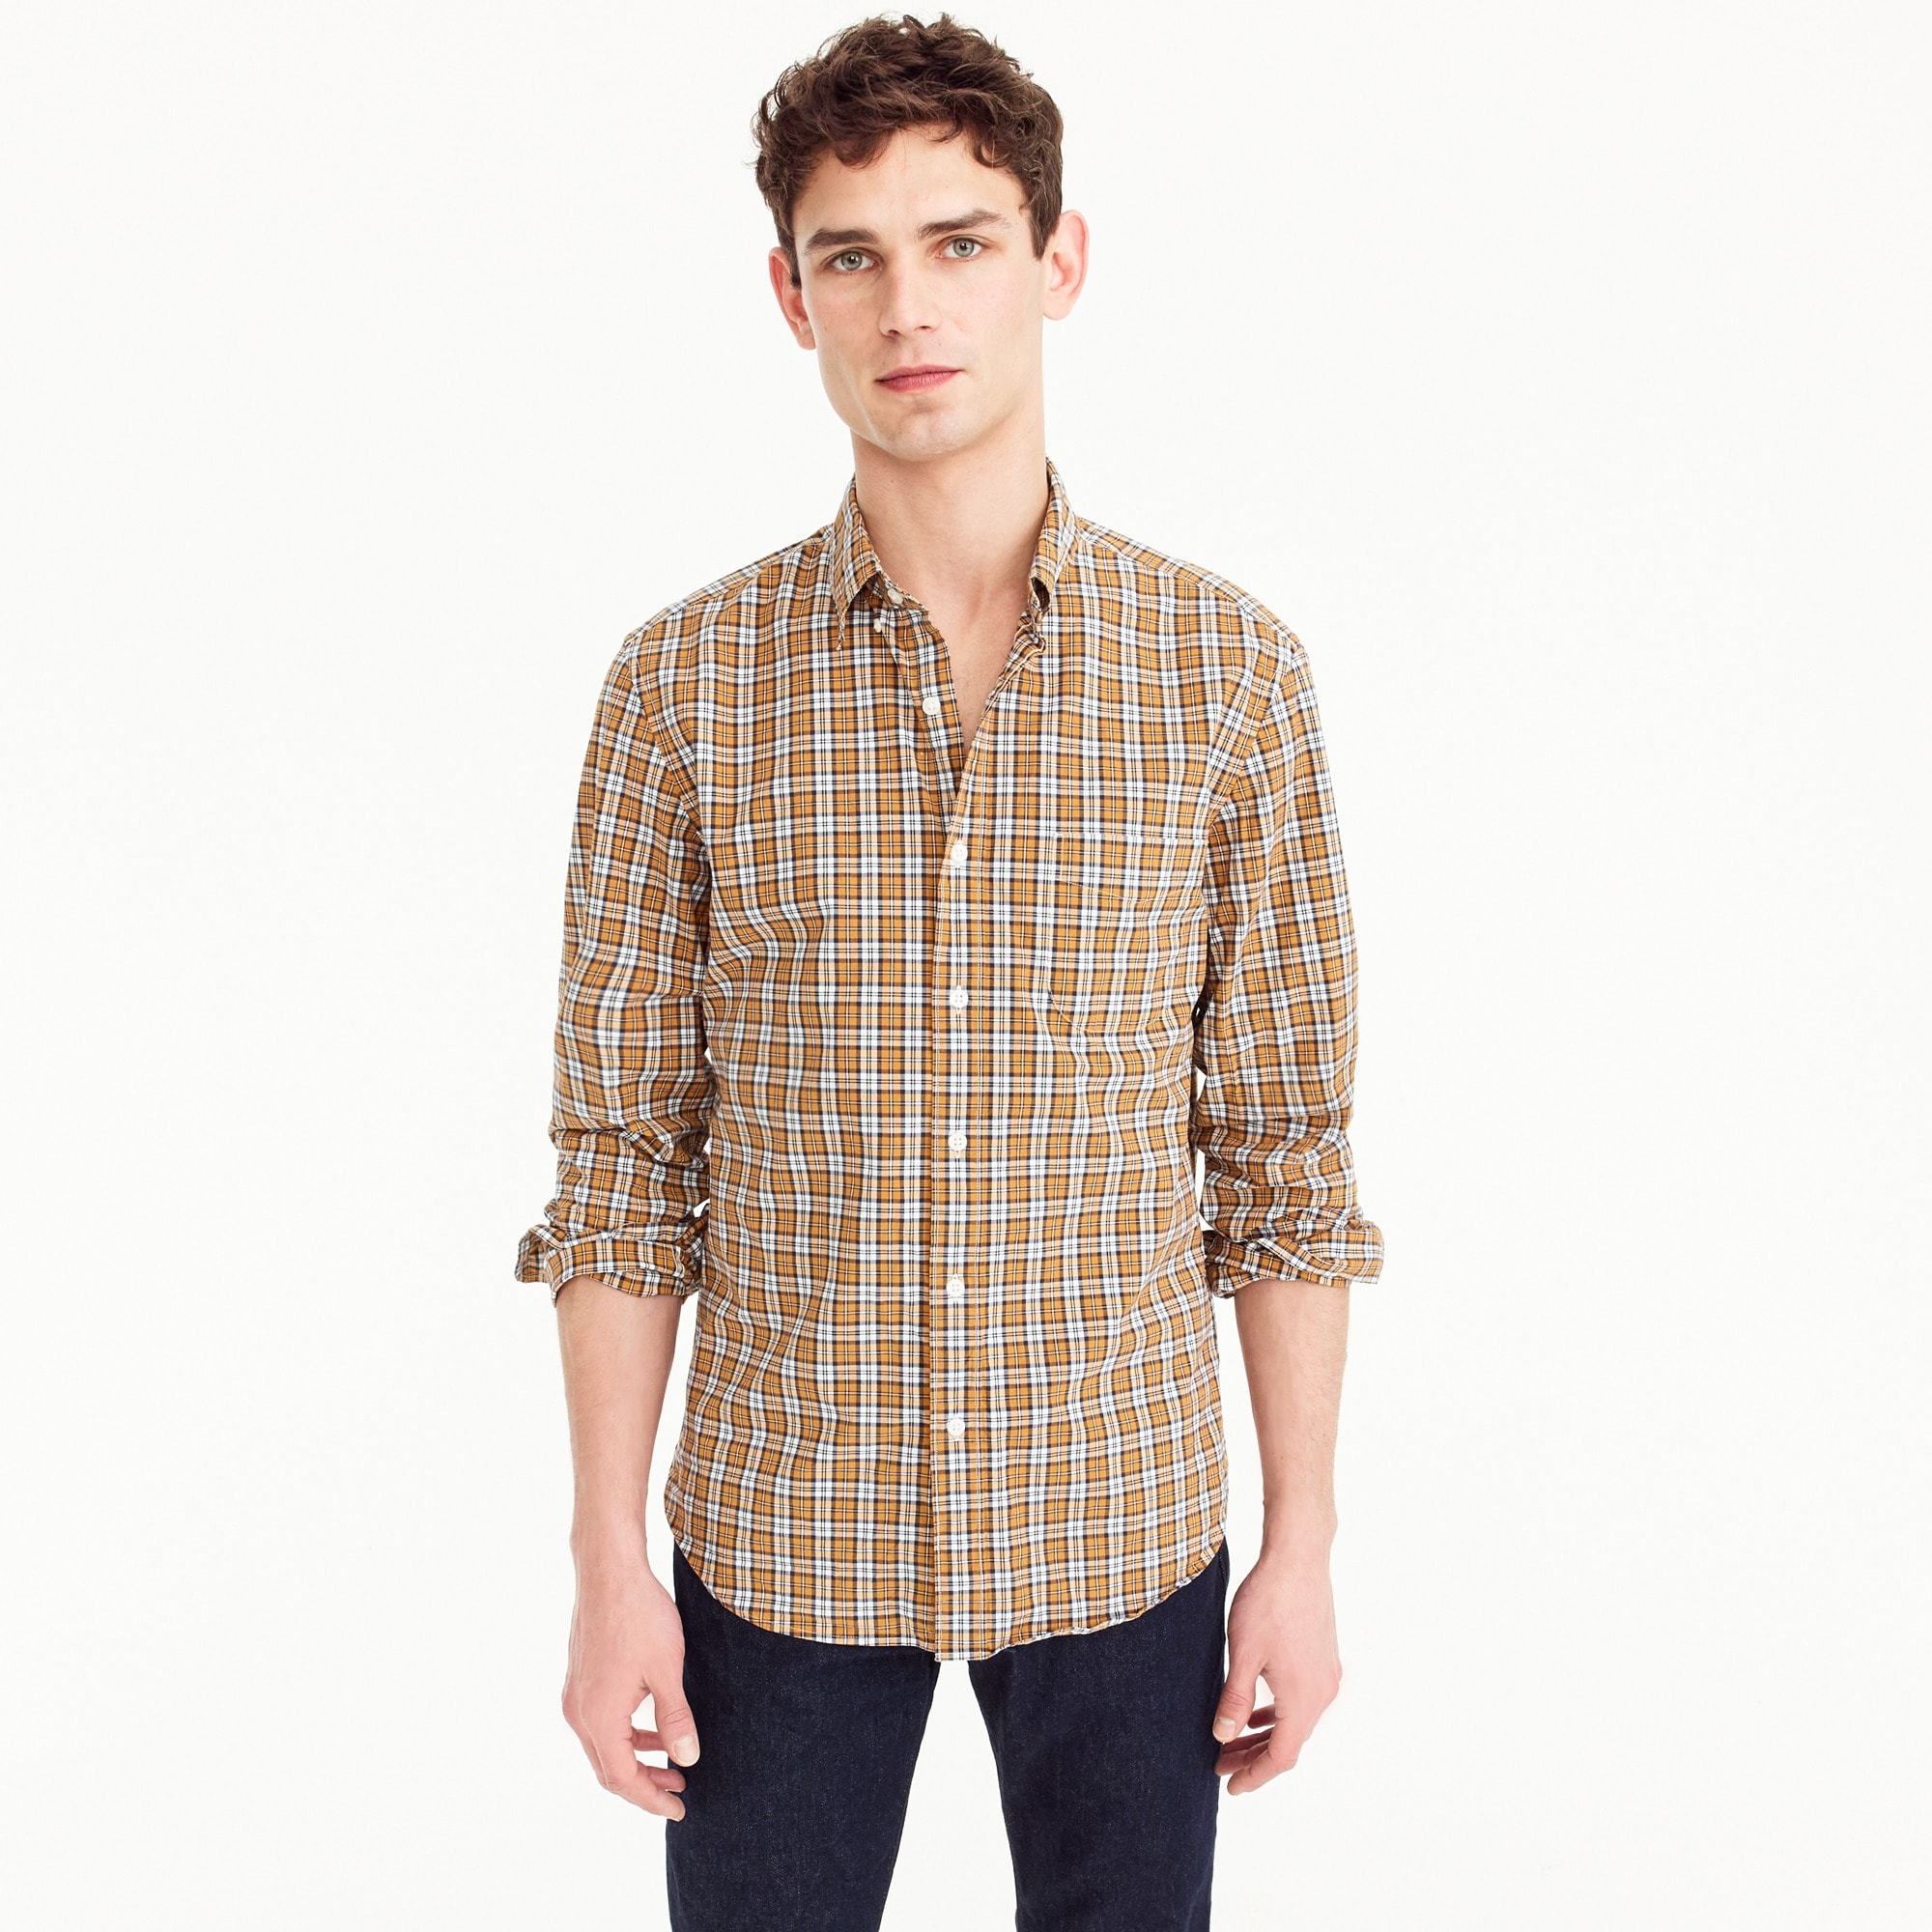 Stretch Secret Wash shirt in bronze plaid men new arrivals c